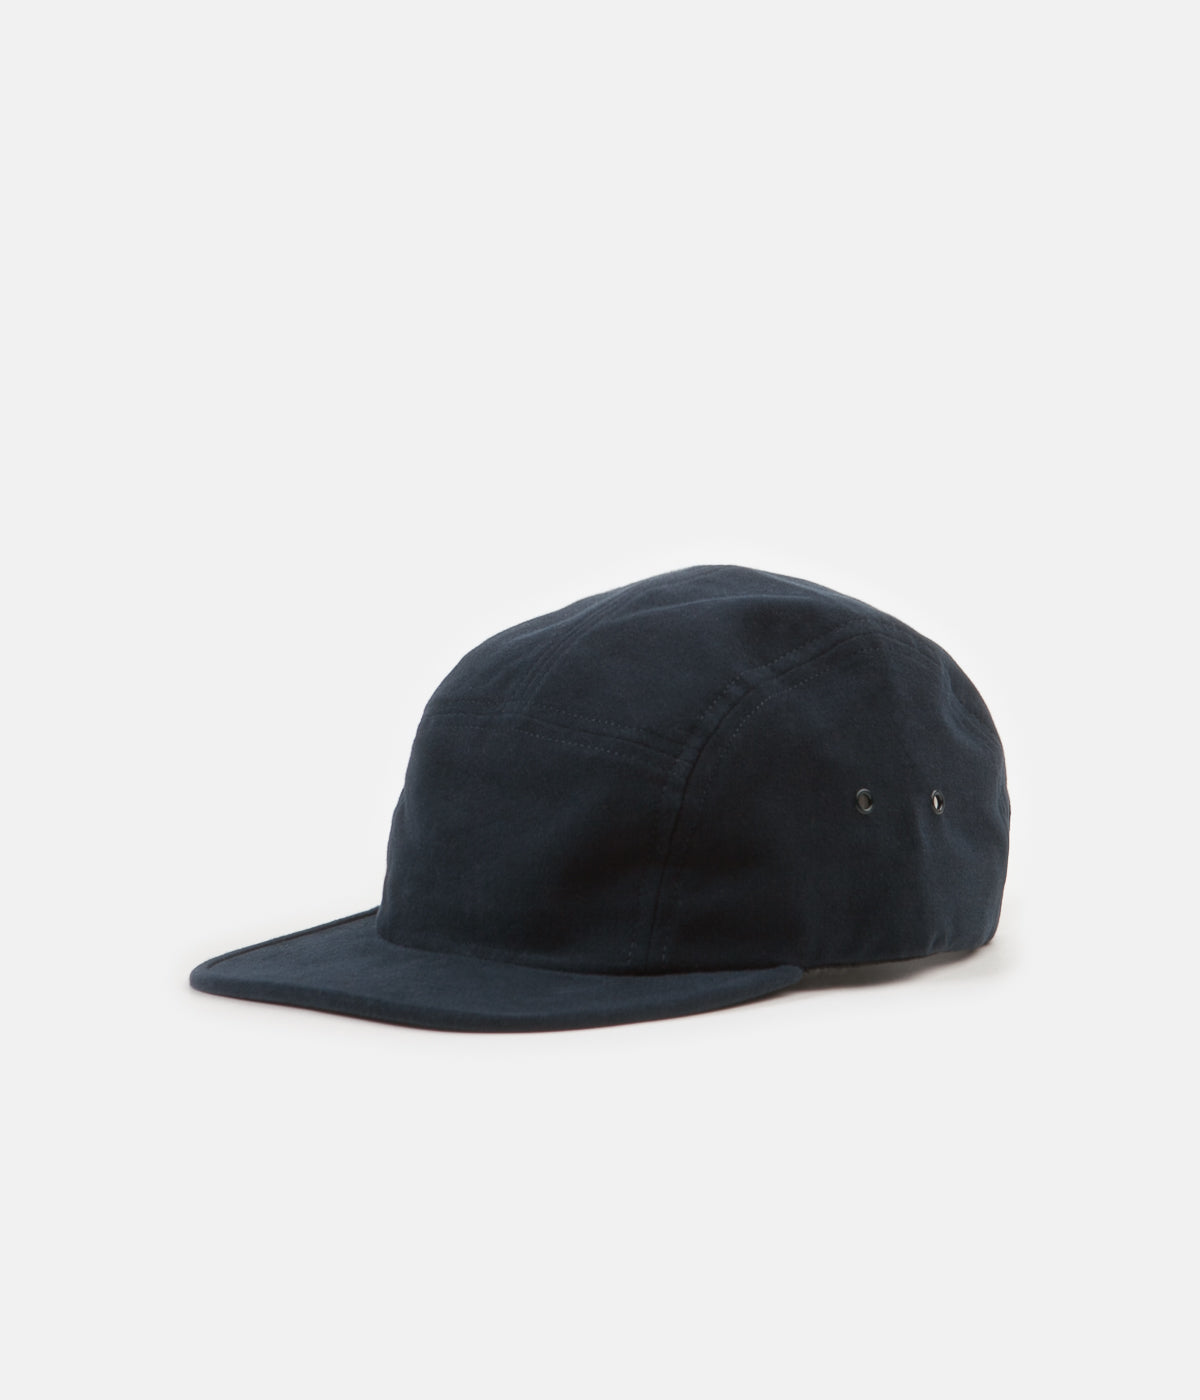 2158a5b188 Norse Projects Moleskin 5 Panel Cap - Dark Navy | Always in Colour